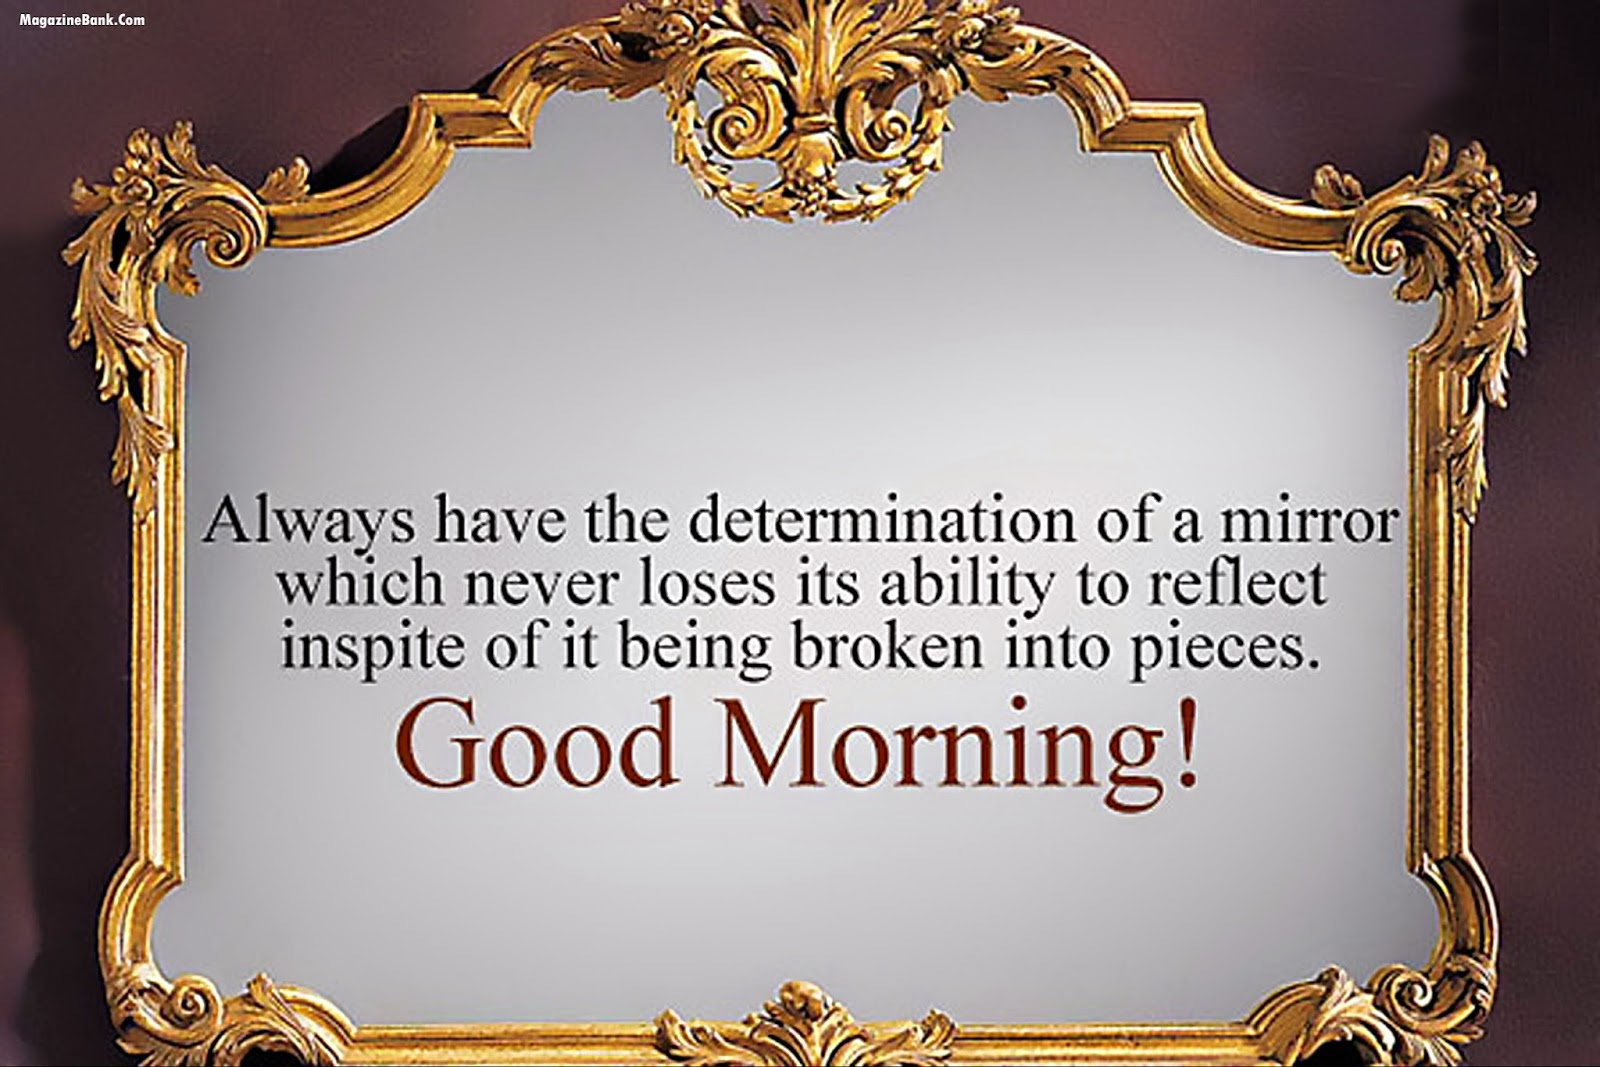 Amazing Morning Quote